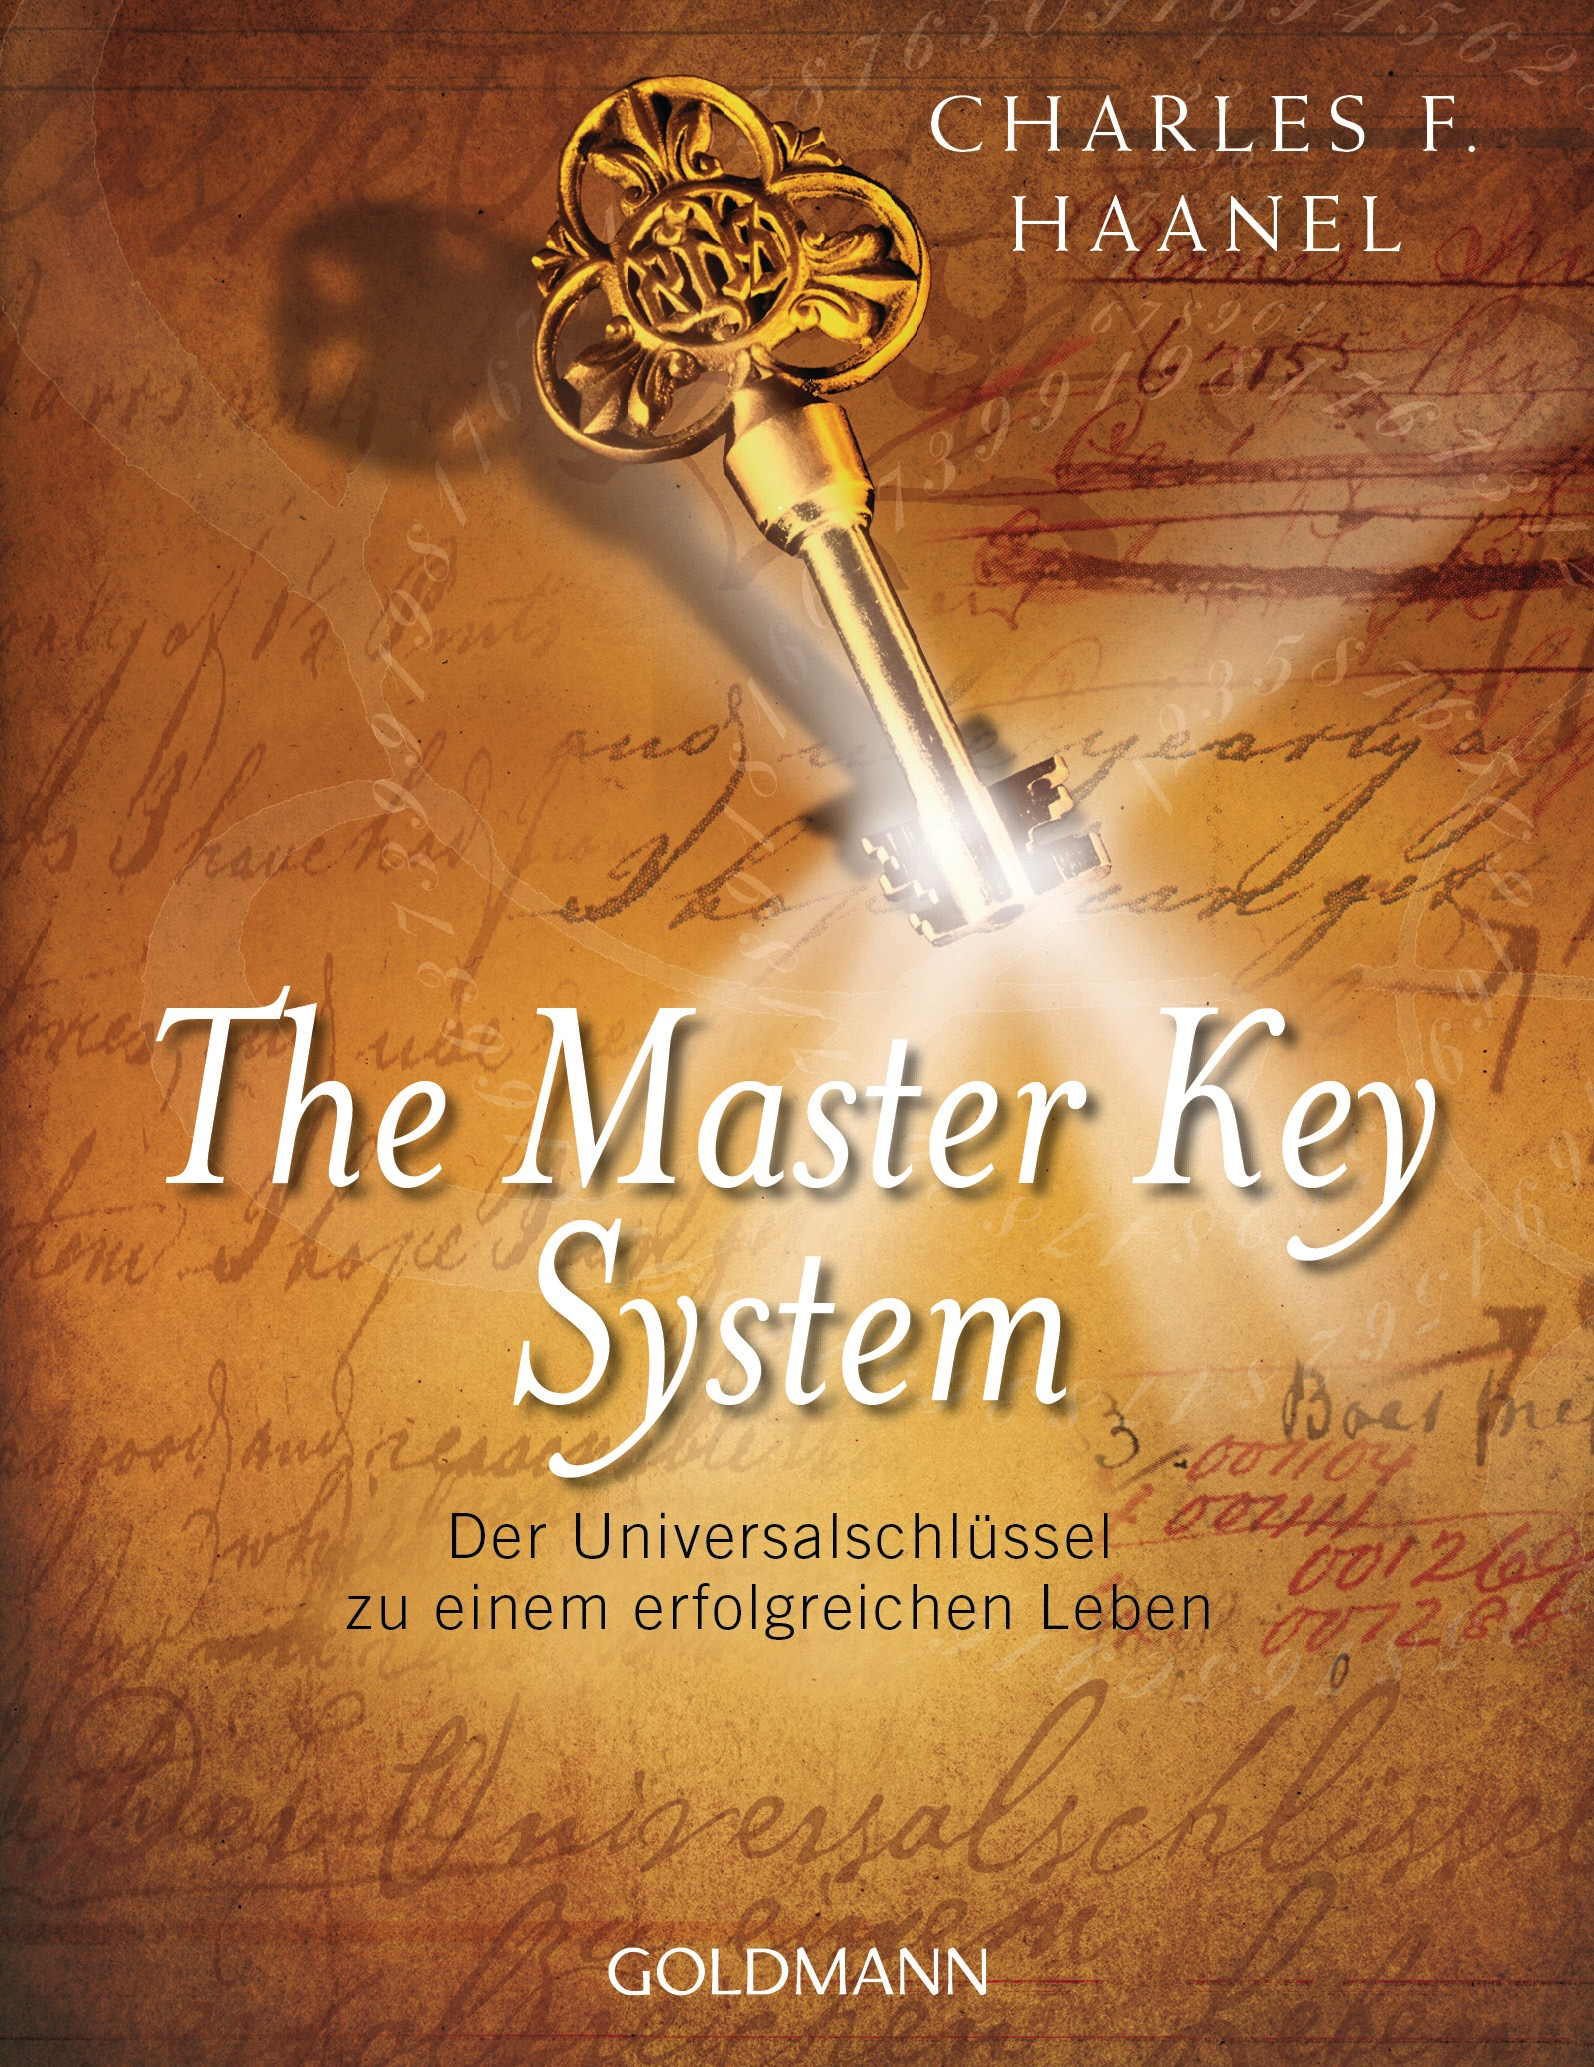 Master key system download the epub